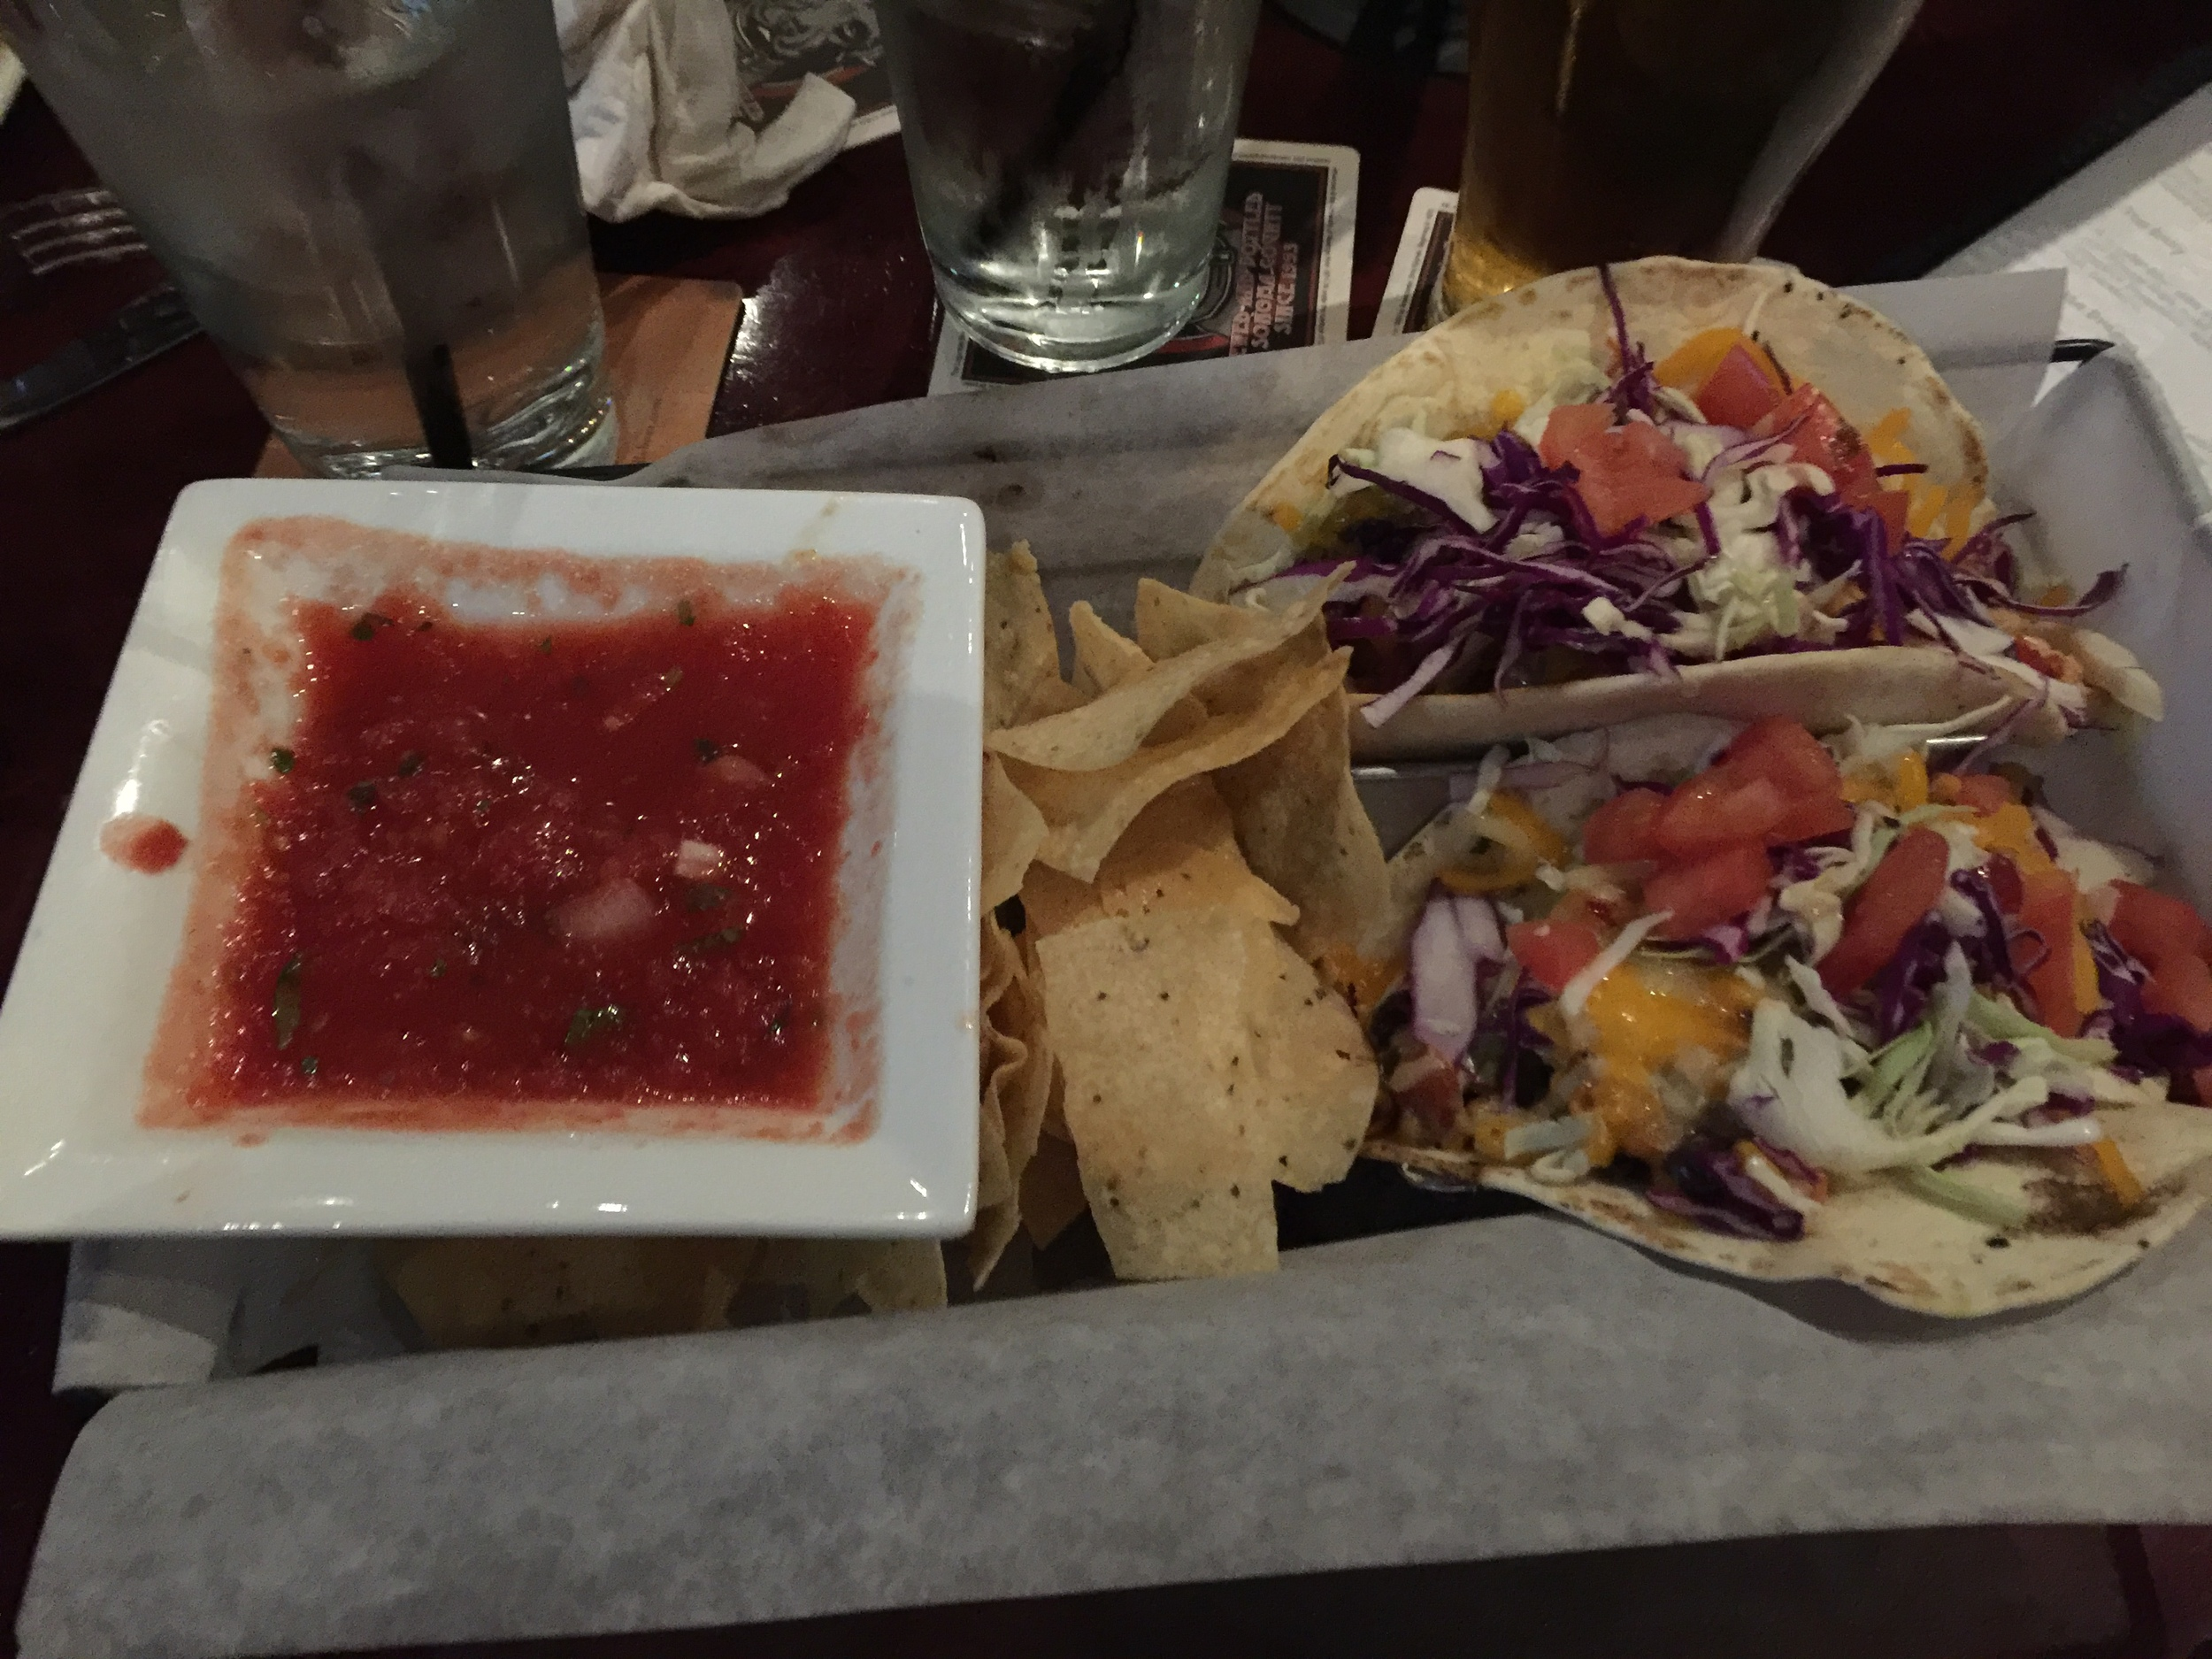 The Tap: Firecracker Shrimp Tacos. Loved these! Their homemade salsa is so good too. They have quite a variety of tacos and I want to try them all! (A lot of fish taco options.)